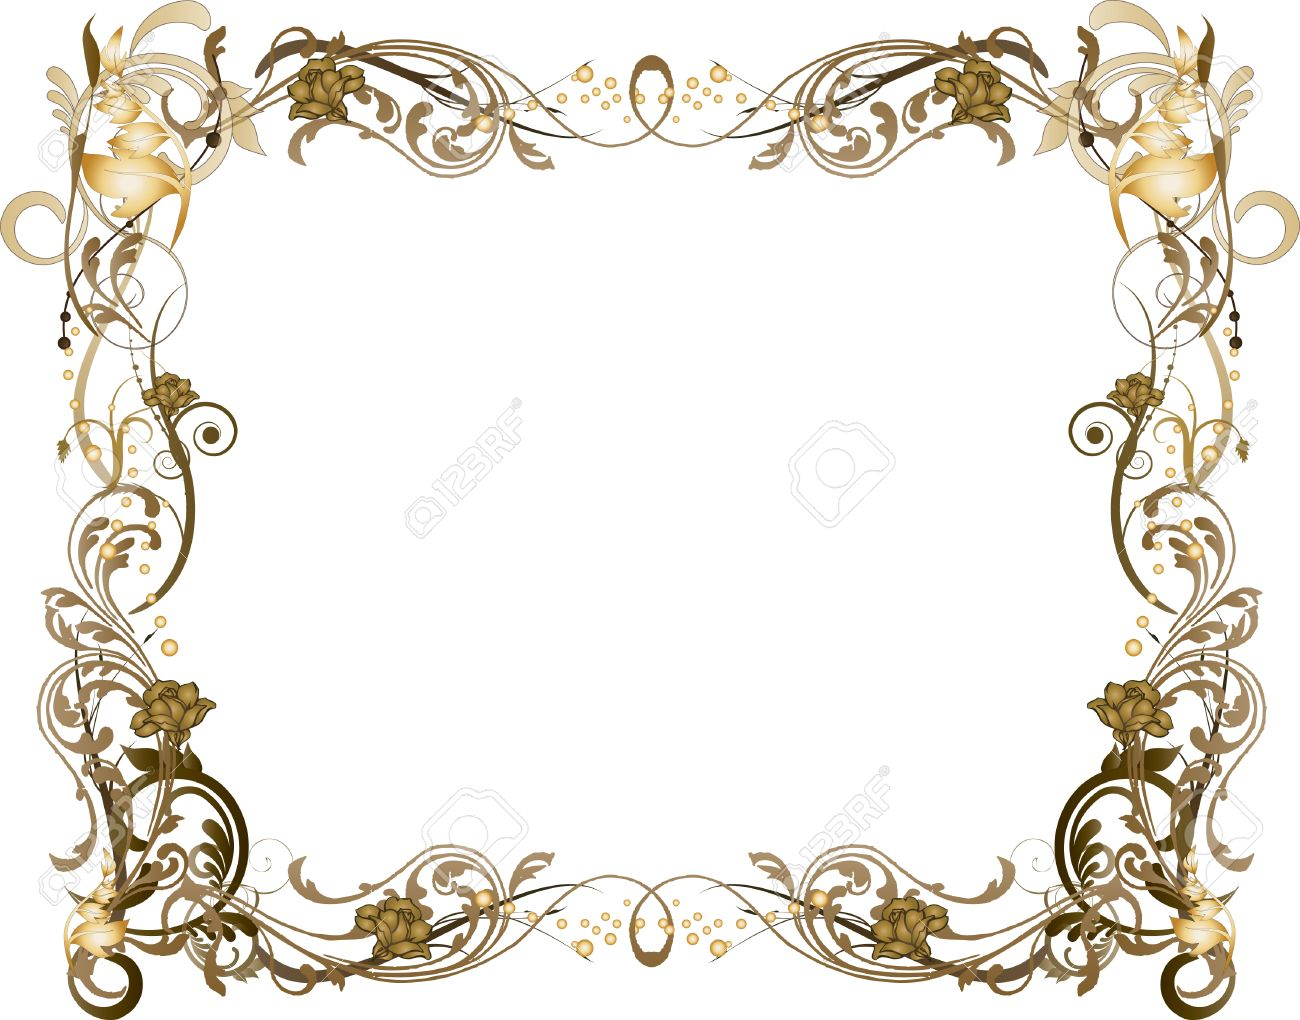 brown and gold floral frame stock vector 2910711